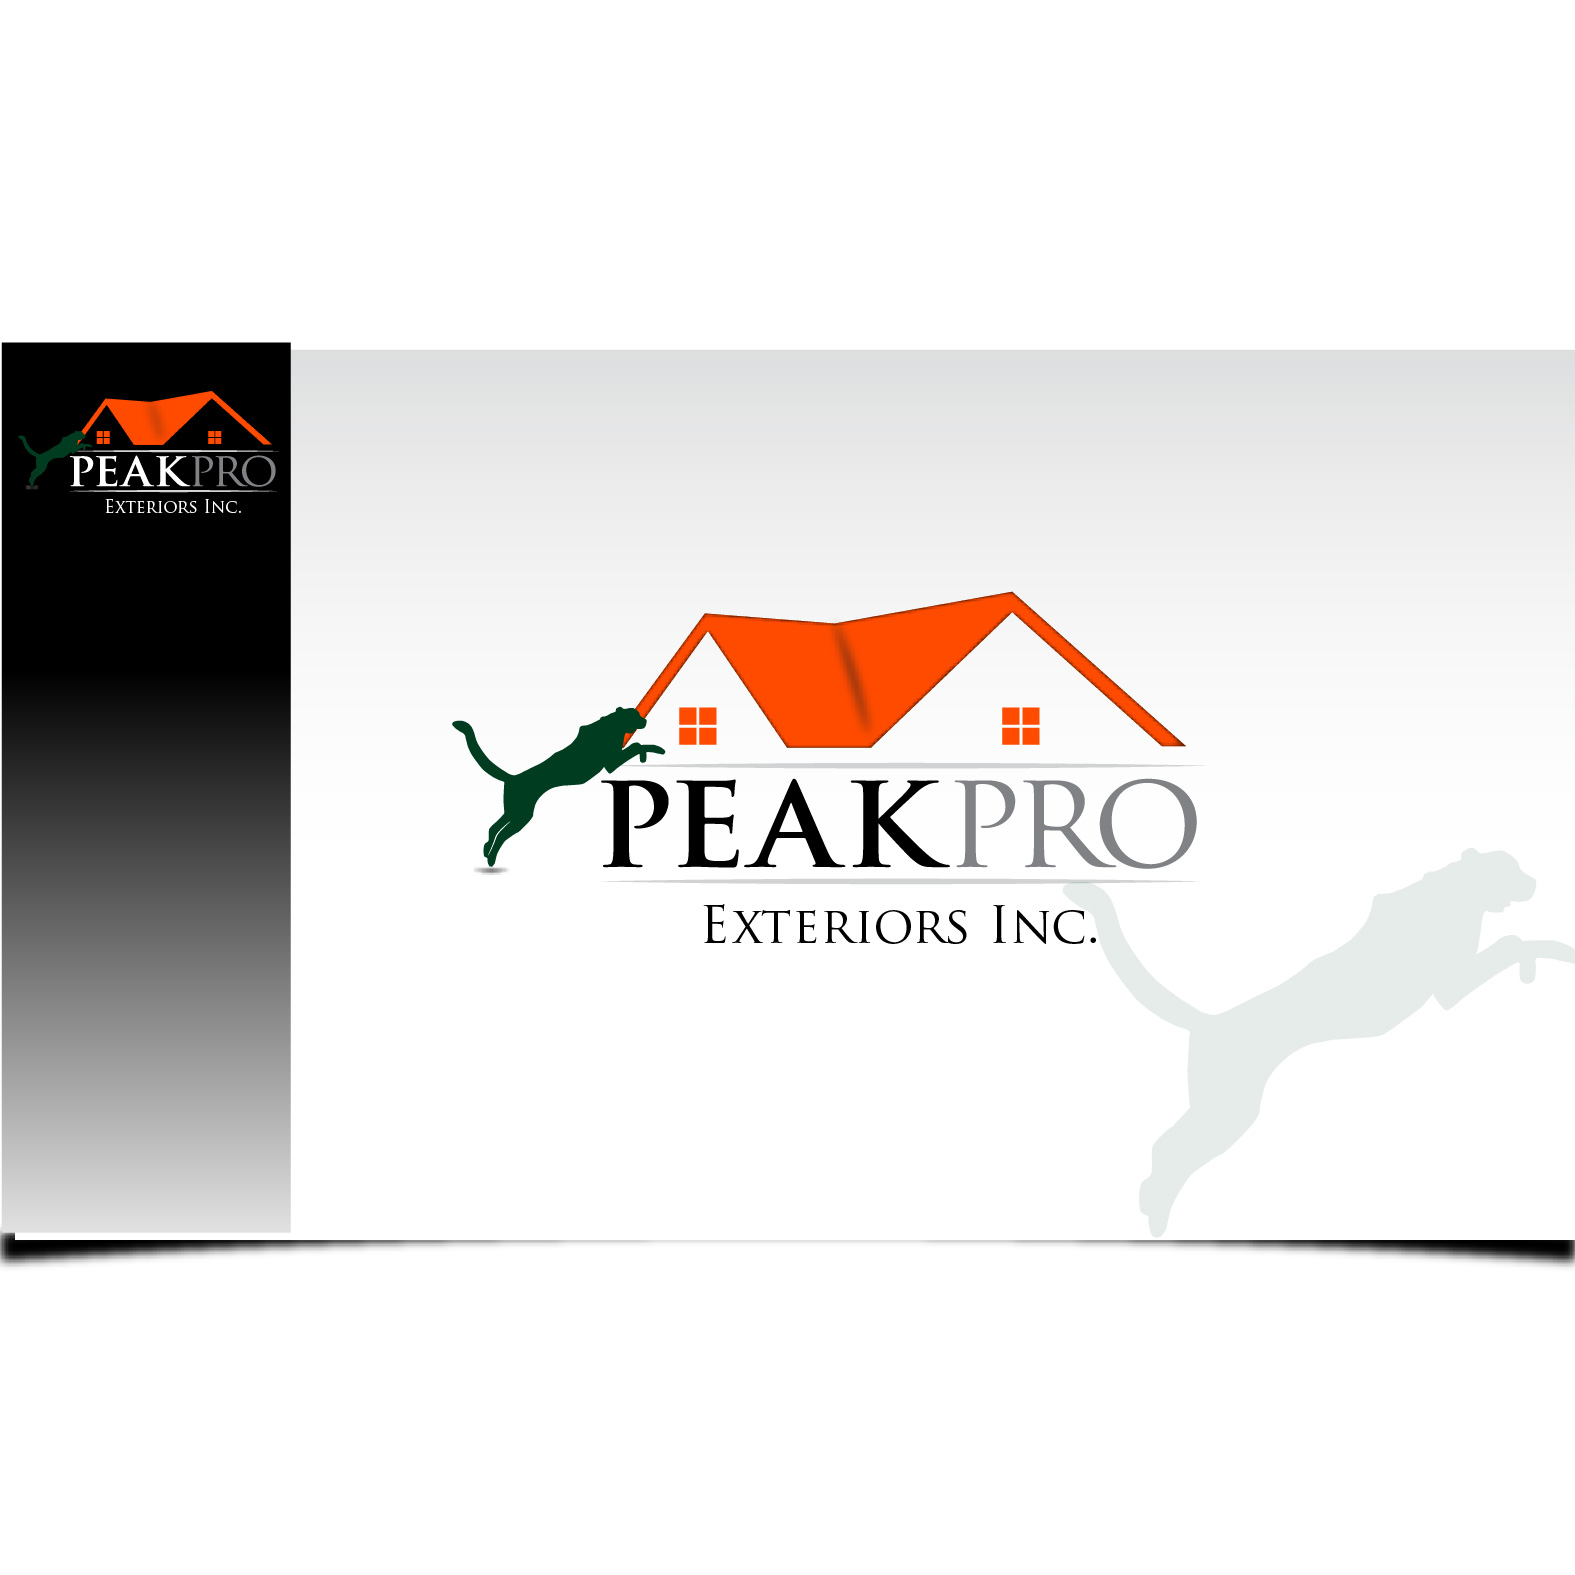 Logo Design by Robert Engi - Entry No. 112 in the Logo Design Contest Captivating Logo Design for Peakpro Exteriors Inc..